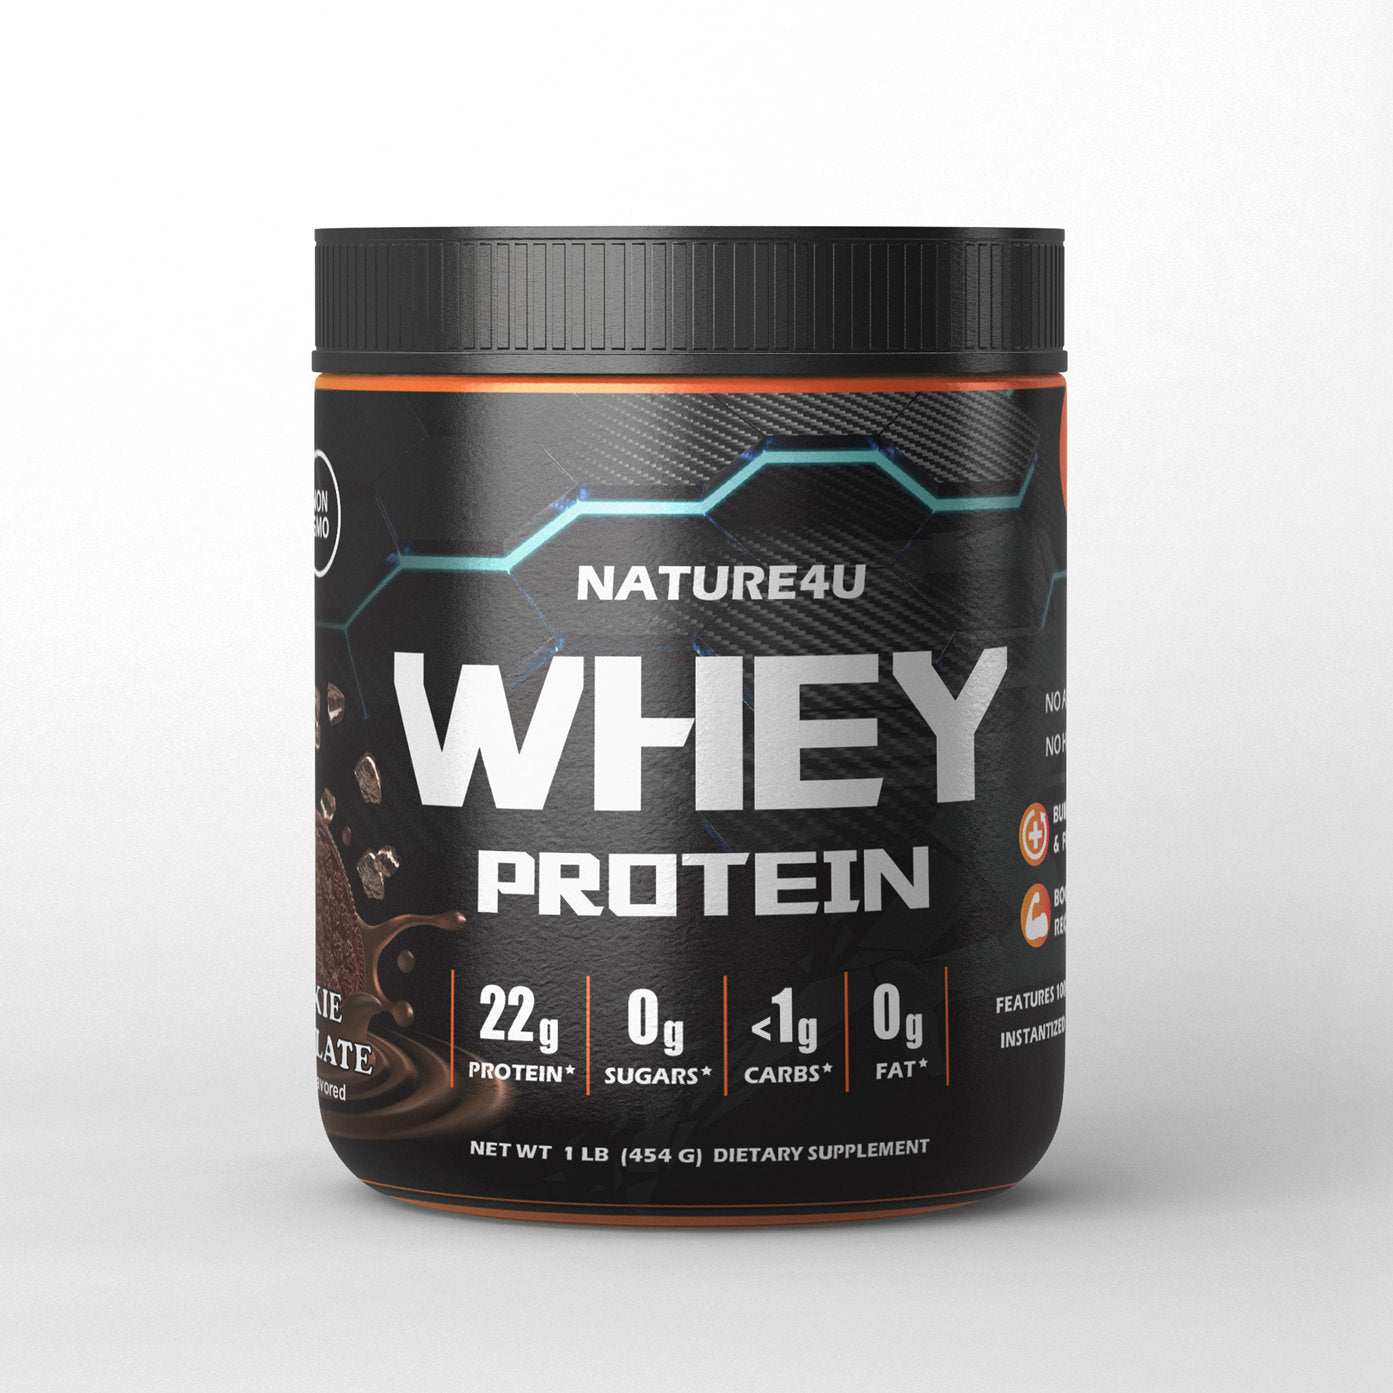 Whey Protein Powder 1 Pound